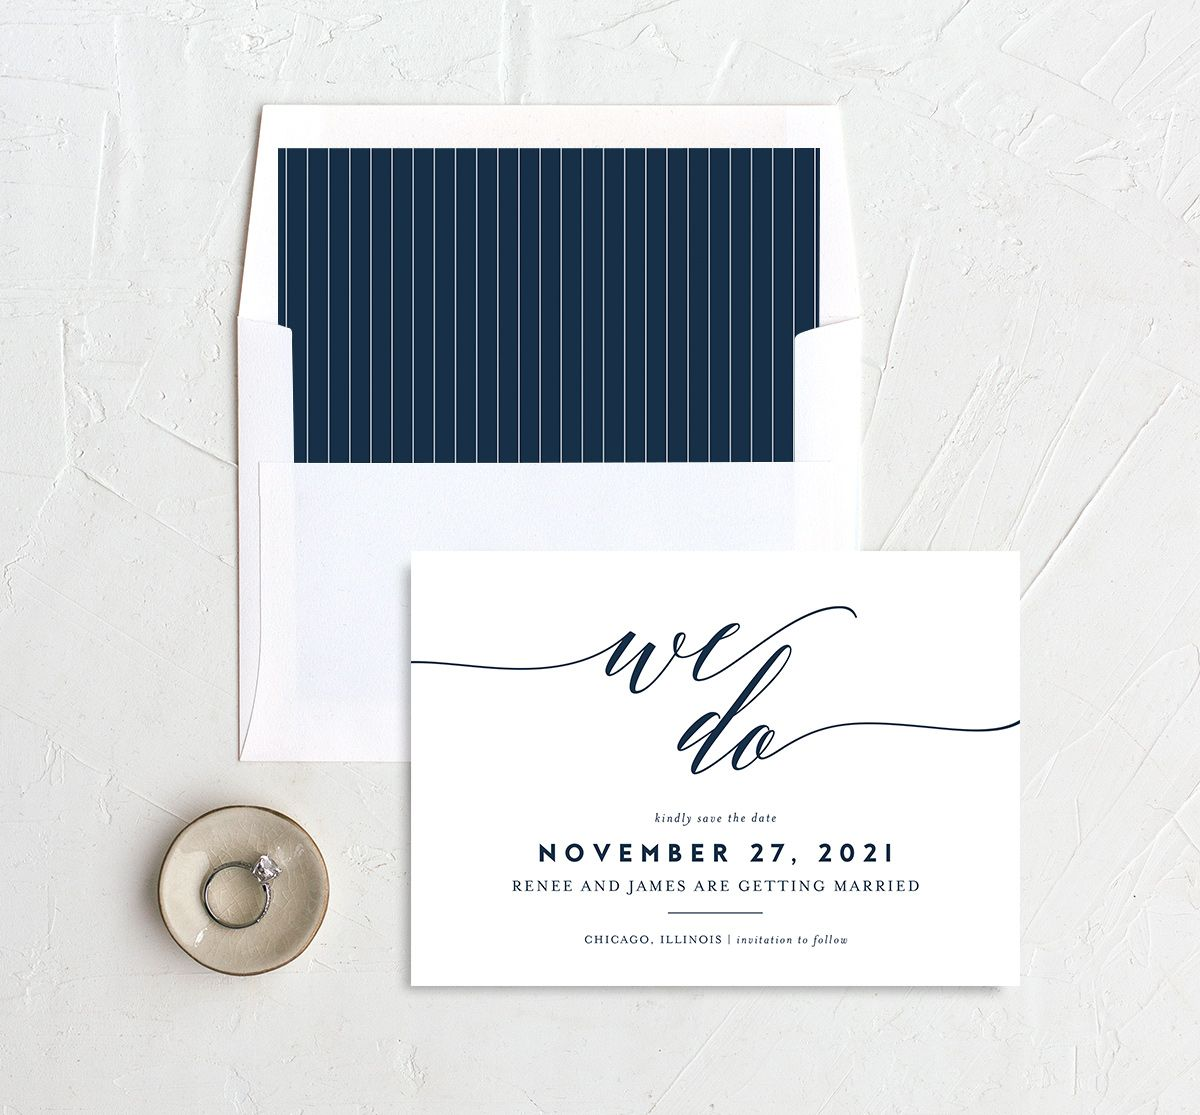 We Do Wedding Save the Dates in navy with liner